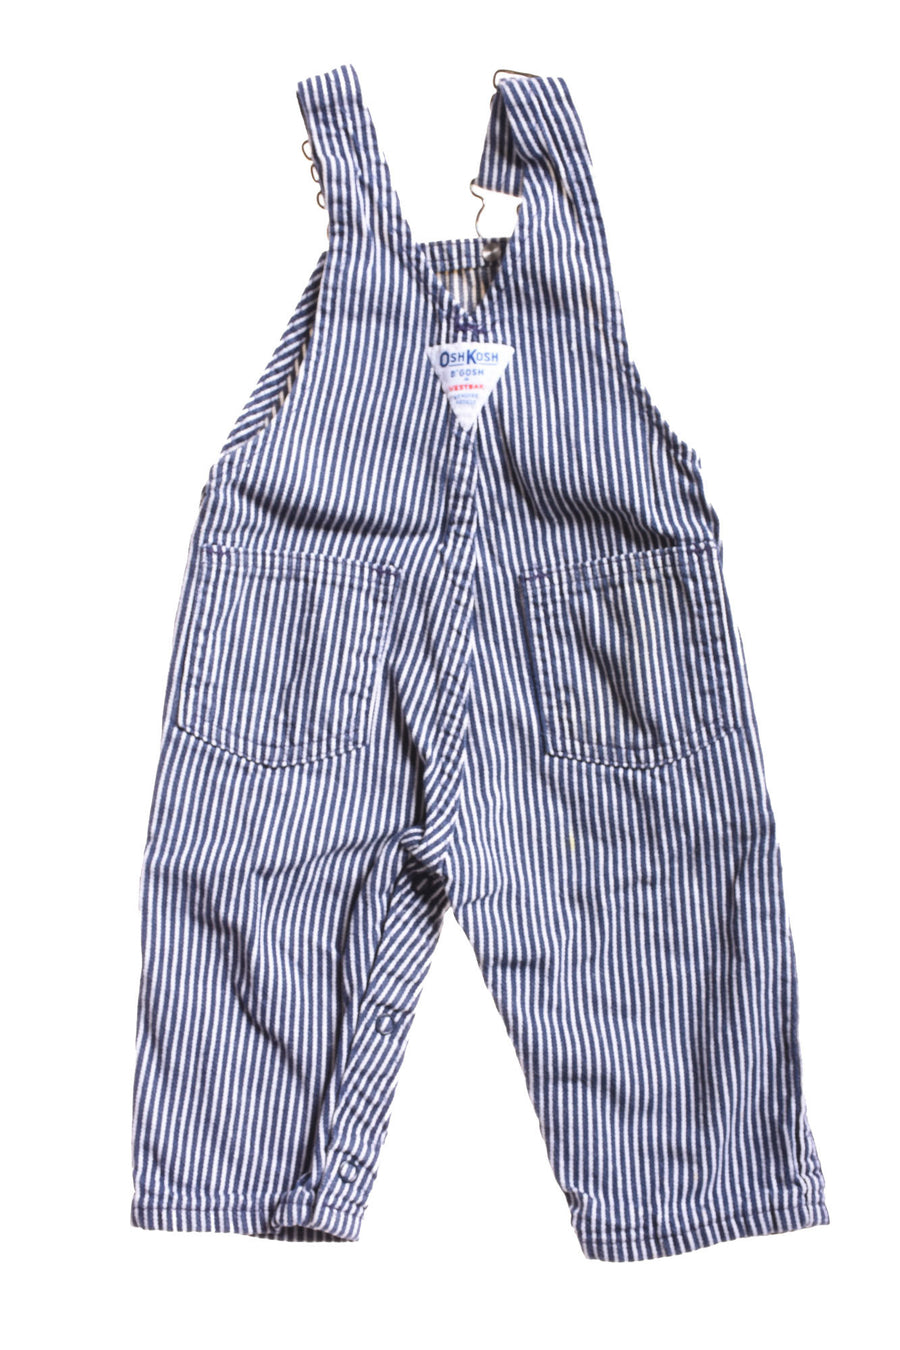 USED OshKosh Baby Boy's Overall Pants 6-9 Months Blue & White